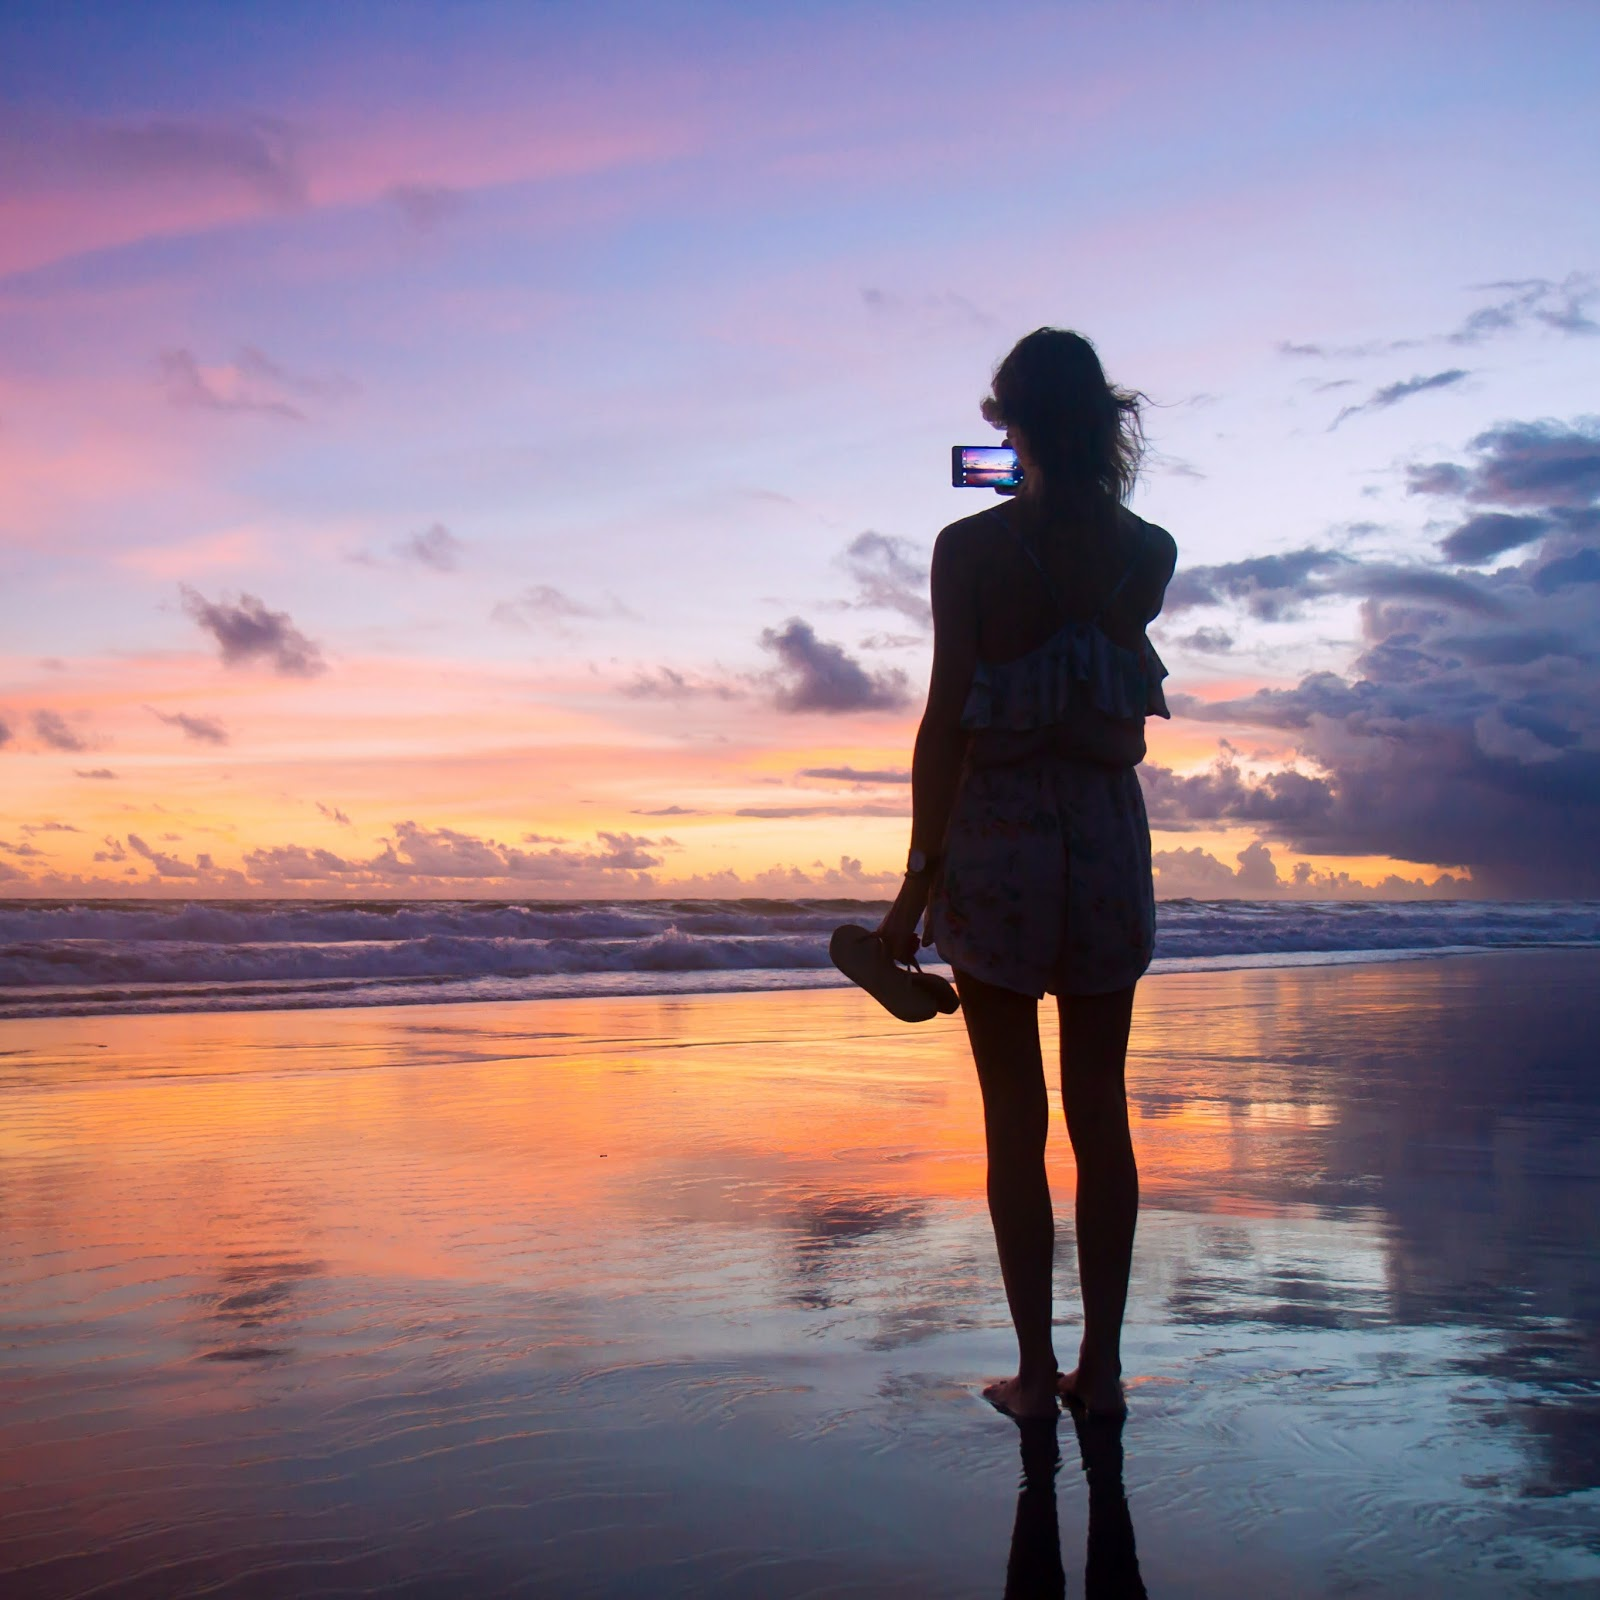 Fashion and travel blogger, Alison Hutchinson, snapping a photo of the sunset in Bali, Indonesia